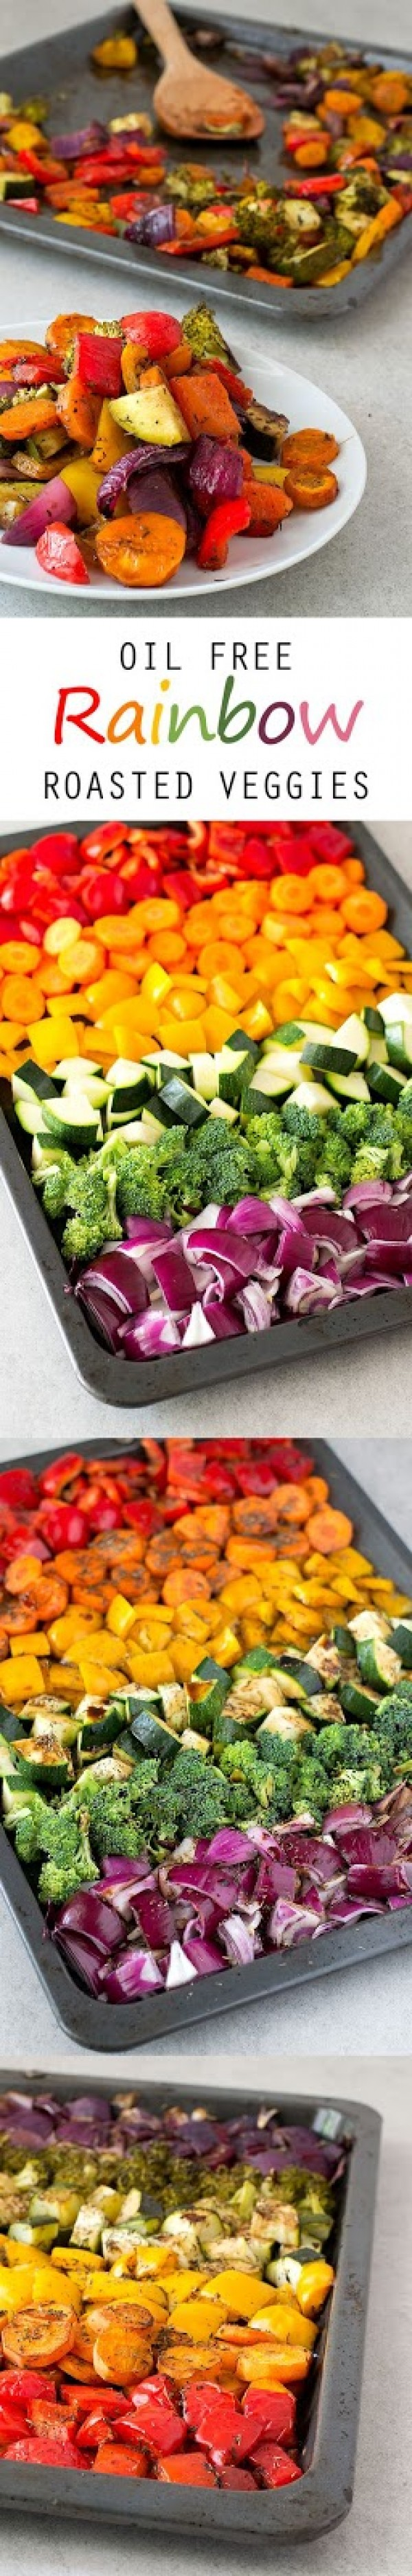 Get the recipe Rainbow Roasted Veggies @recipes_to_go